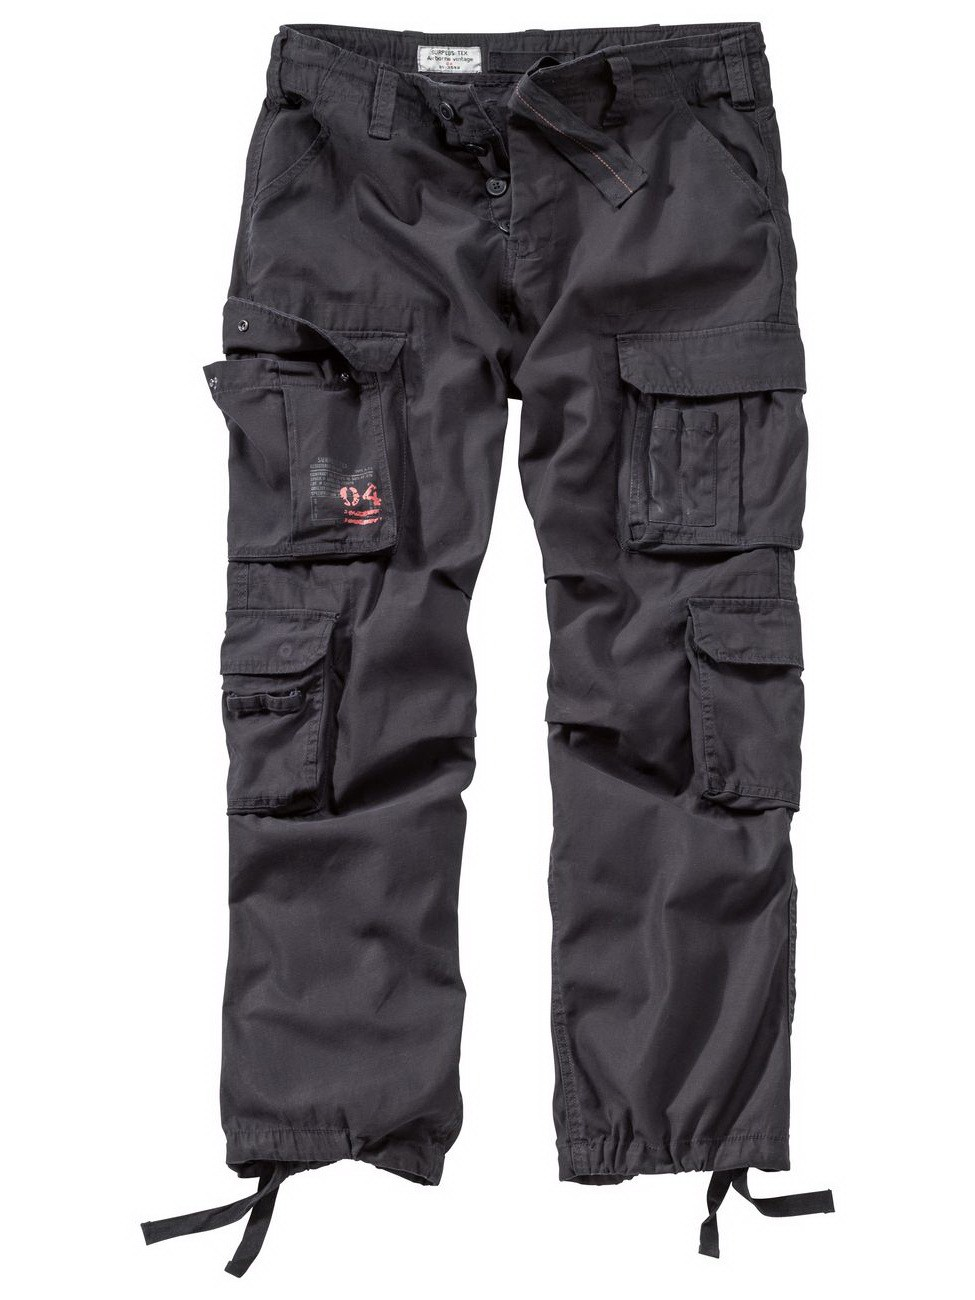 Surplus Herren Hose Airborne Trousers 05-3598